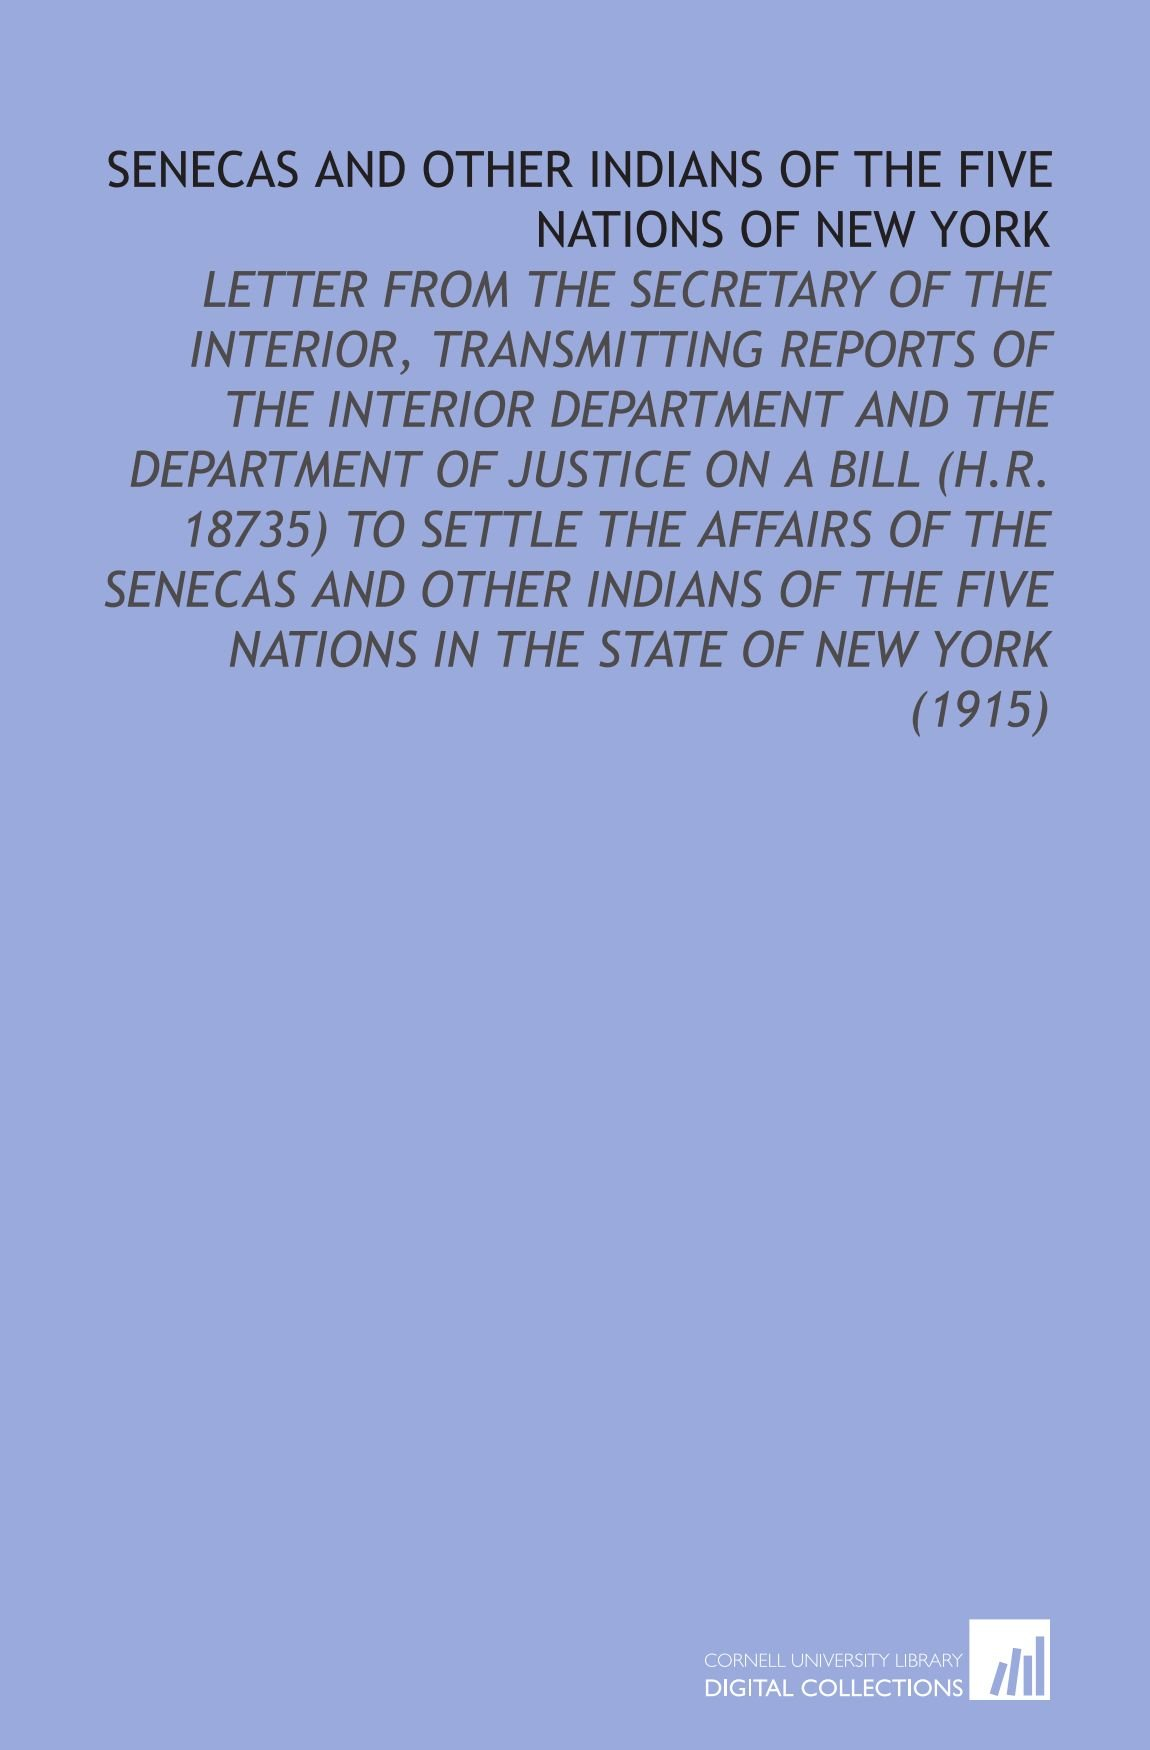 Download Senecas and Other Indians of the Five Nations of New York: Letter From the Secretary of the Interior, Transmitting Reports of the Interior Department Five Nations in the State of New York (1915) pdf epub